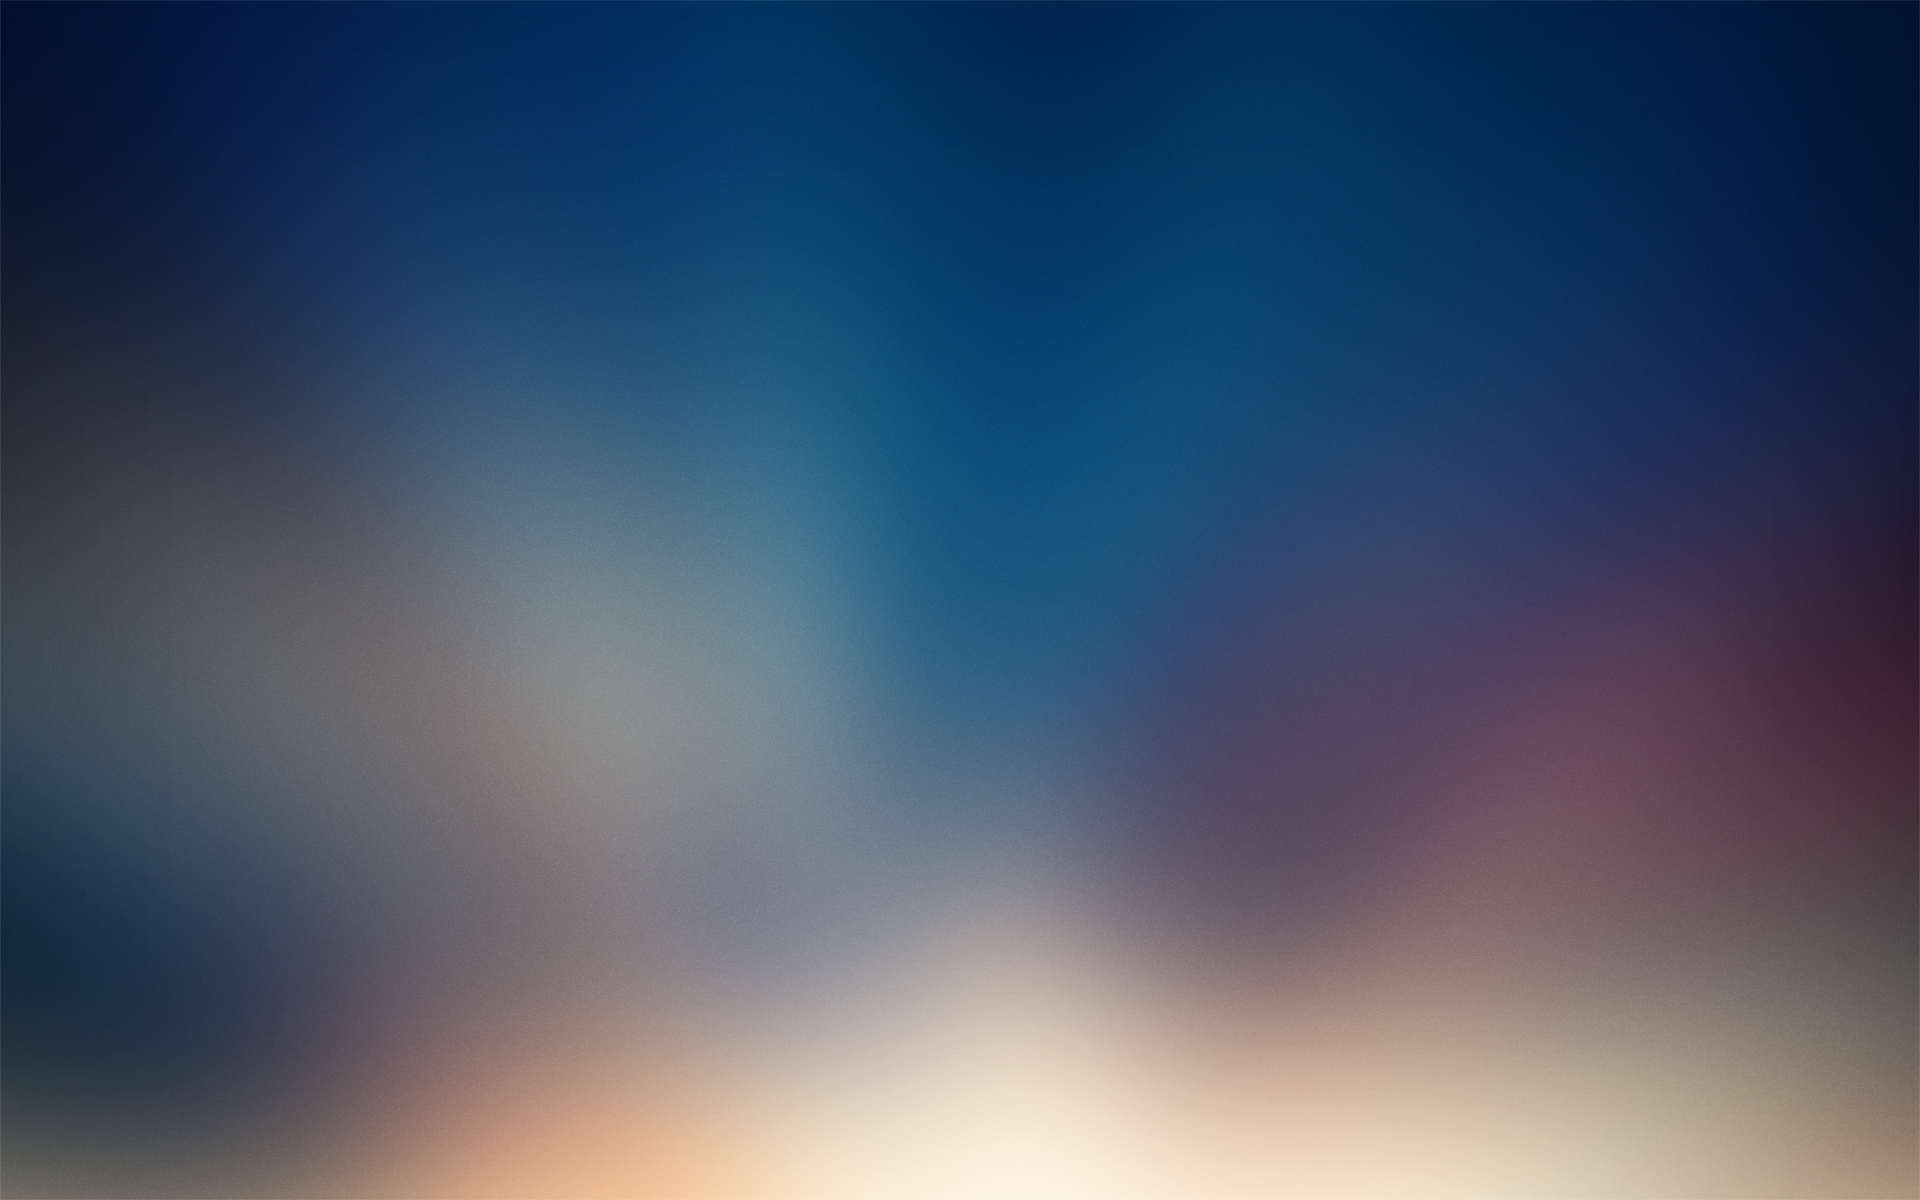 blur wallpapers free - photo #47